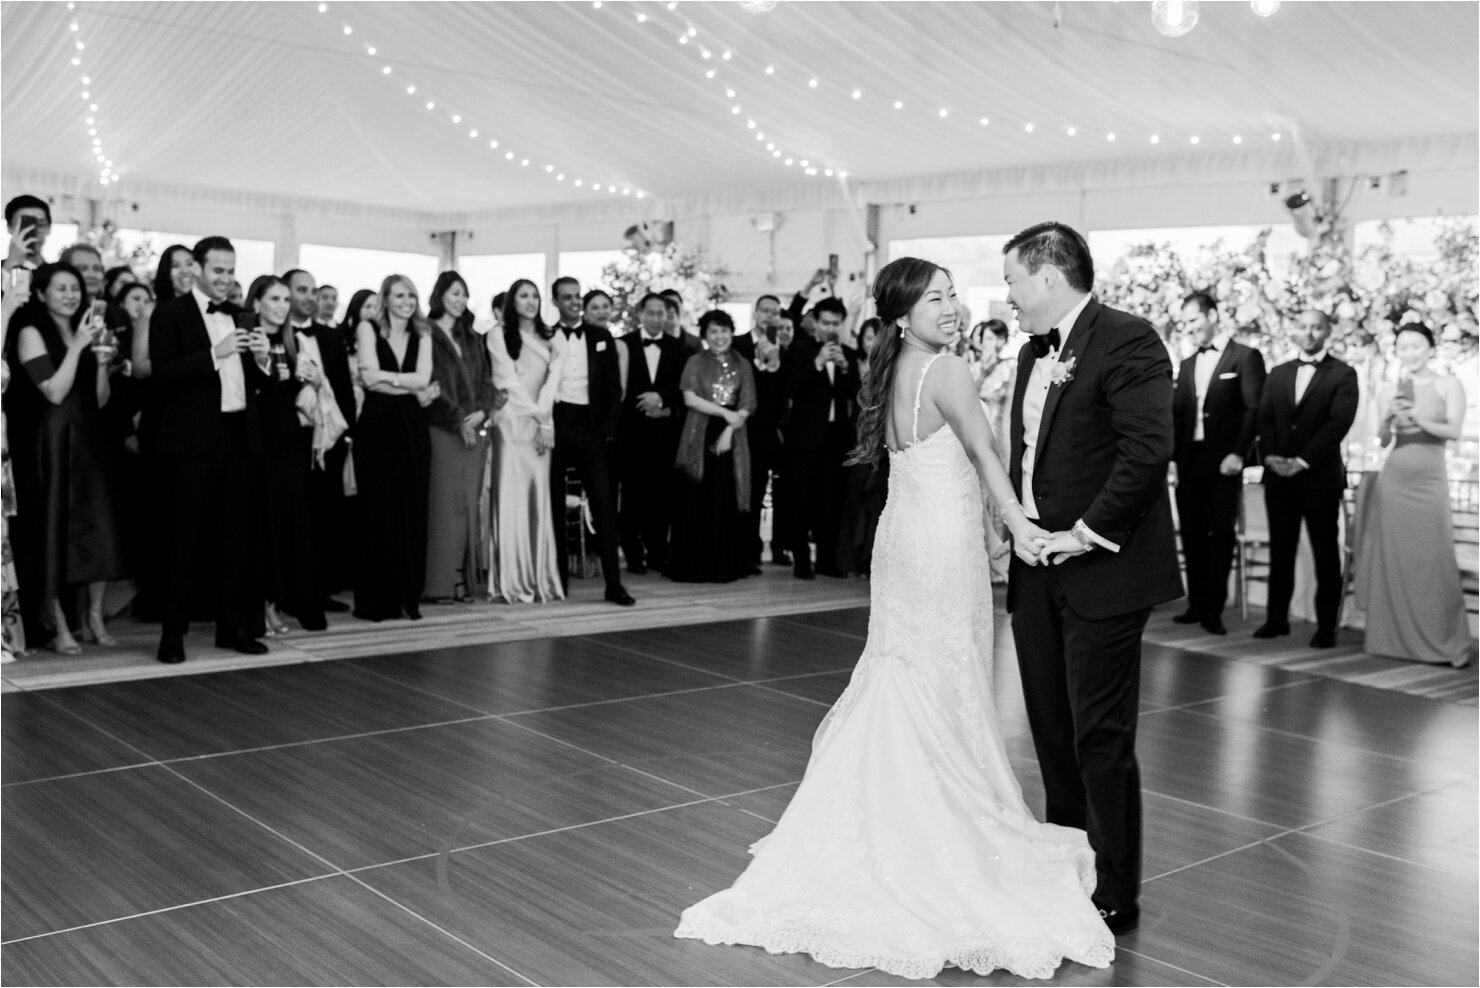 Bride and Groom First Dance in Tented Wedding at Gurney's Montauk